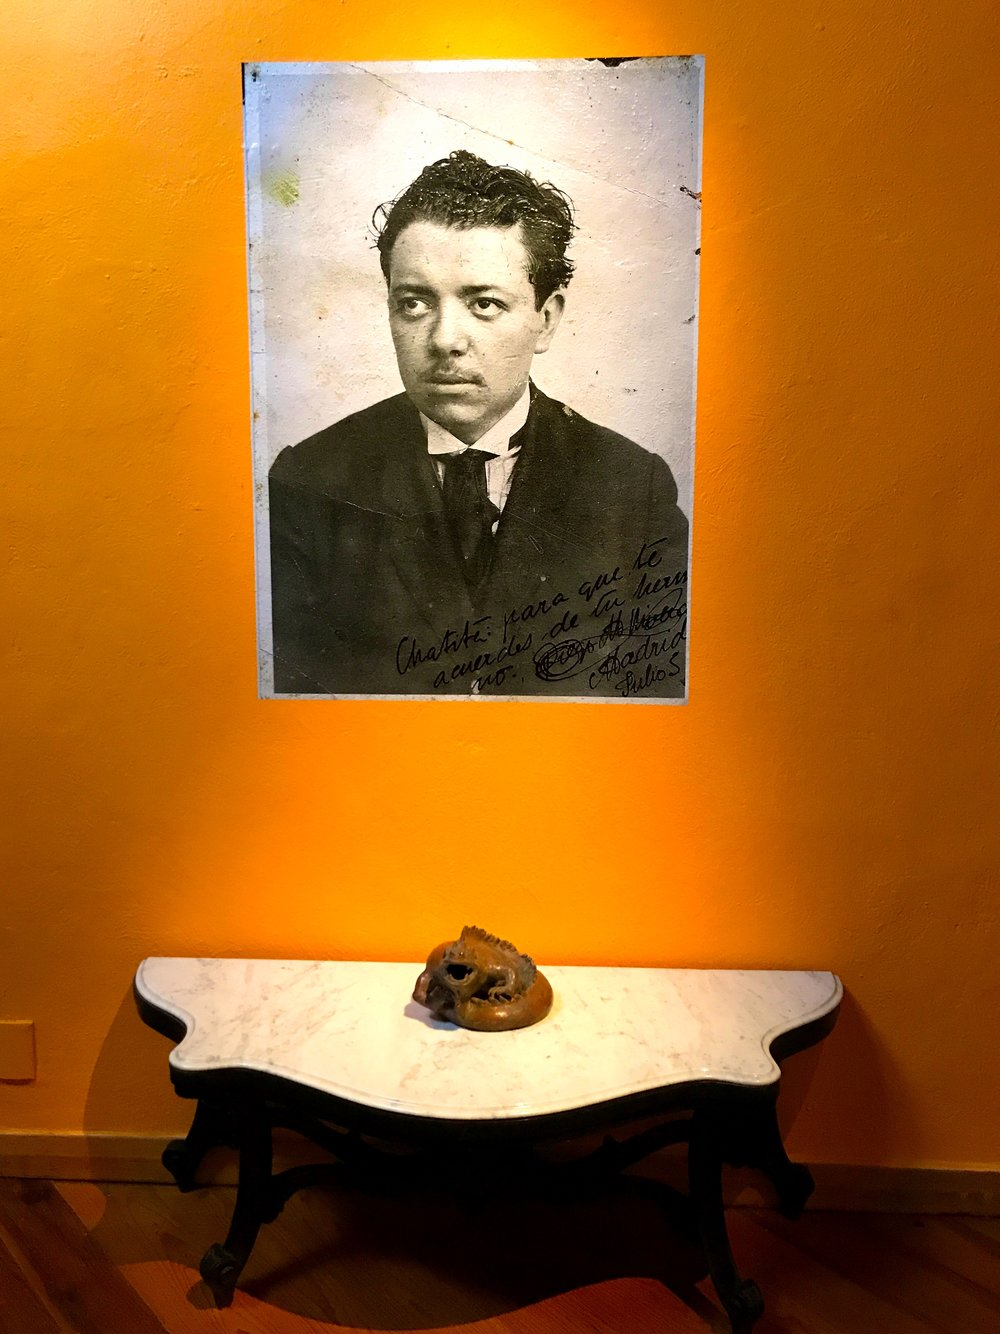 Olmedo amassed the largest private collection of Rivera's works